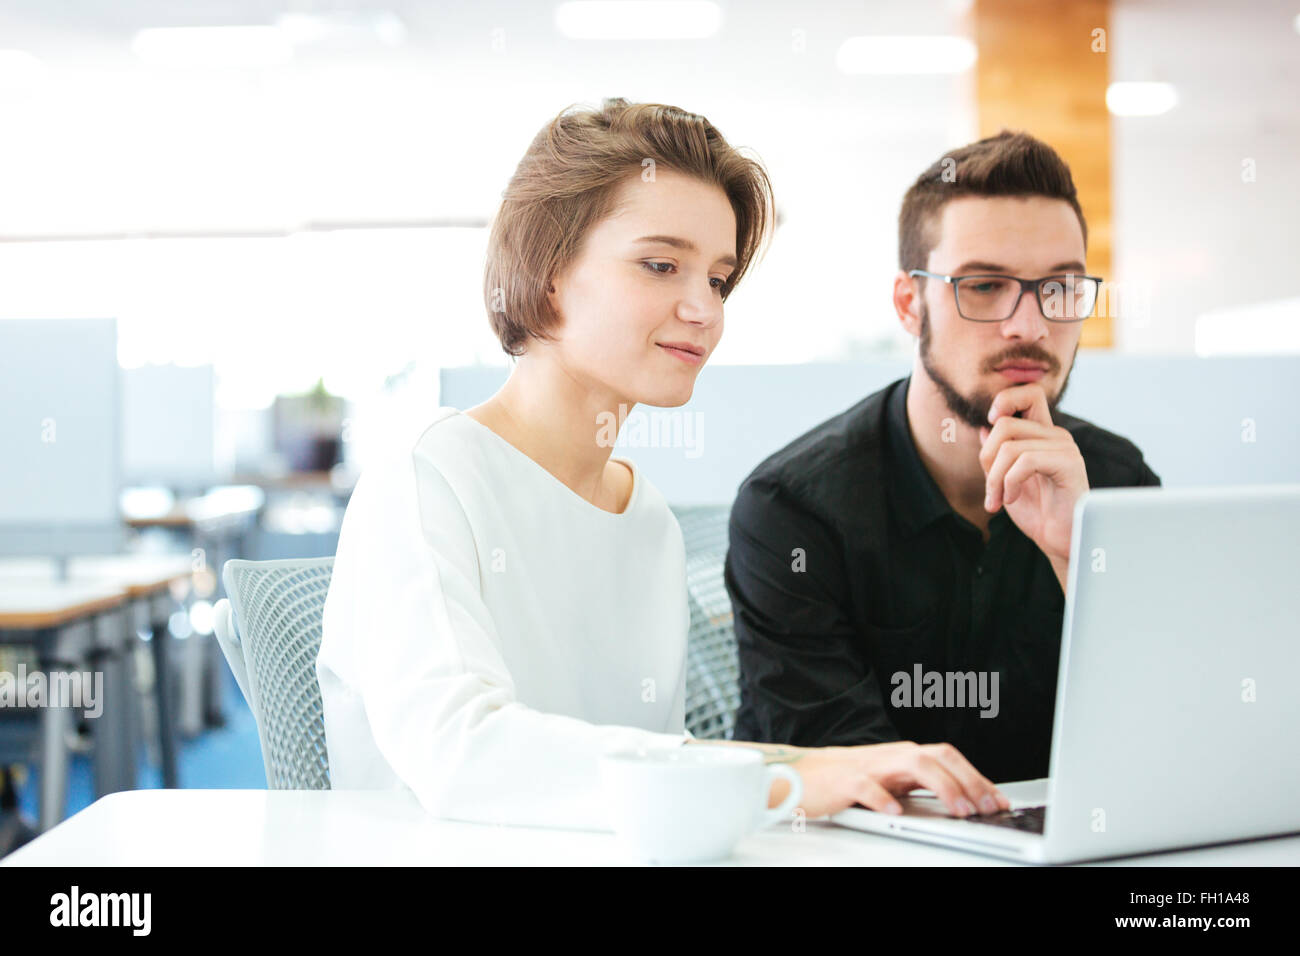 Concentrated young man and woman sitting and discussing new project using laptop in office - Stock Image